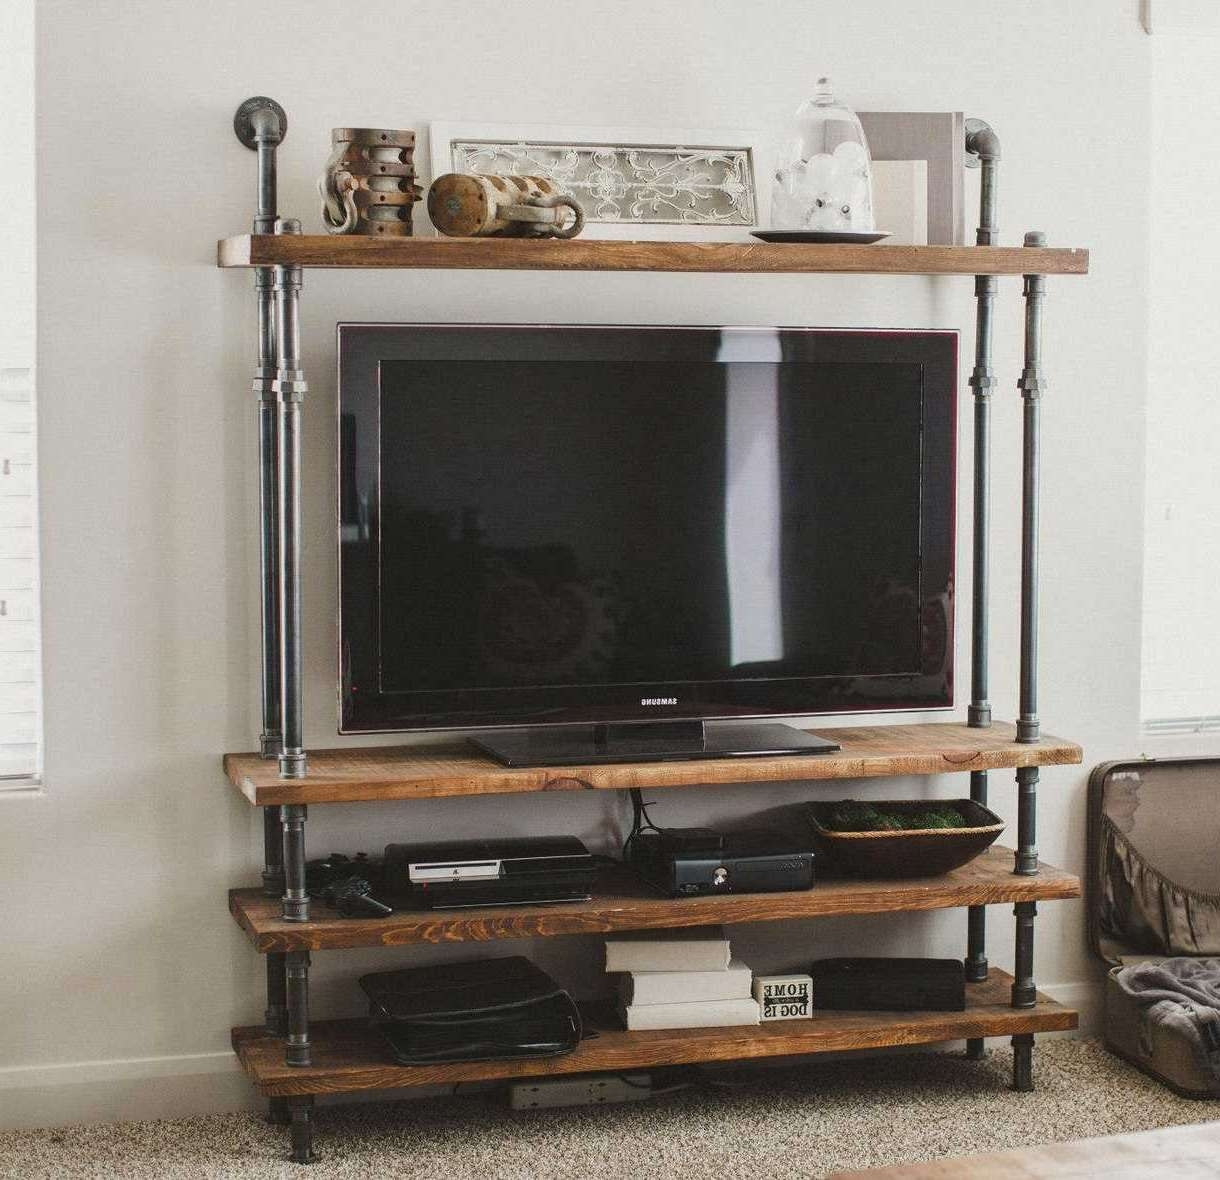 Cool Tv Stand, How To Choose A Tv Stand Tv Stands, Tvs And Intended For Cool Tv Stands (View 8 of 15)